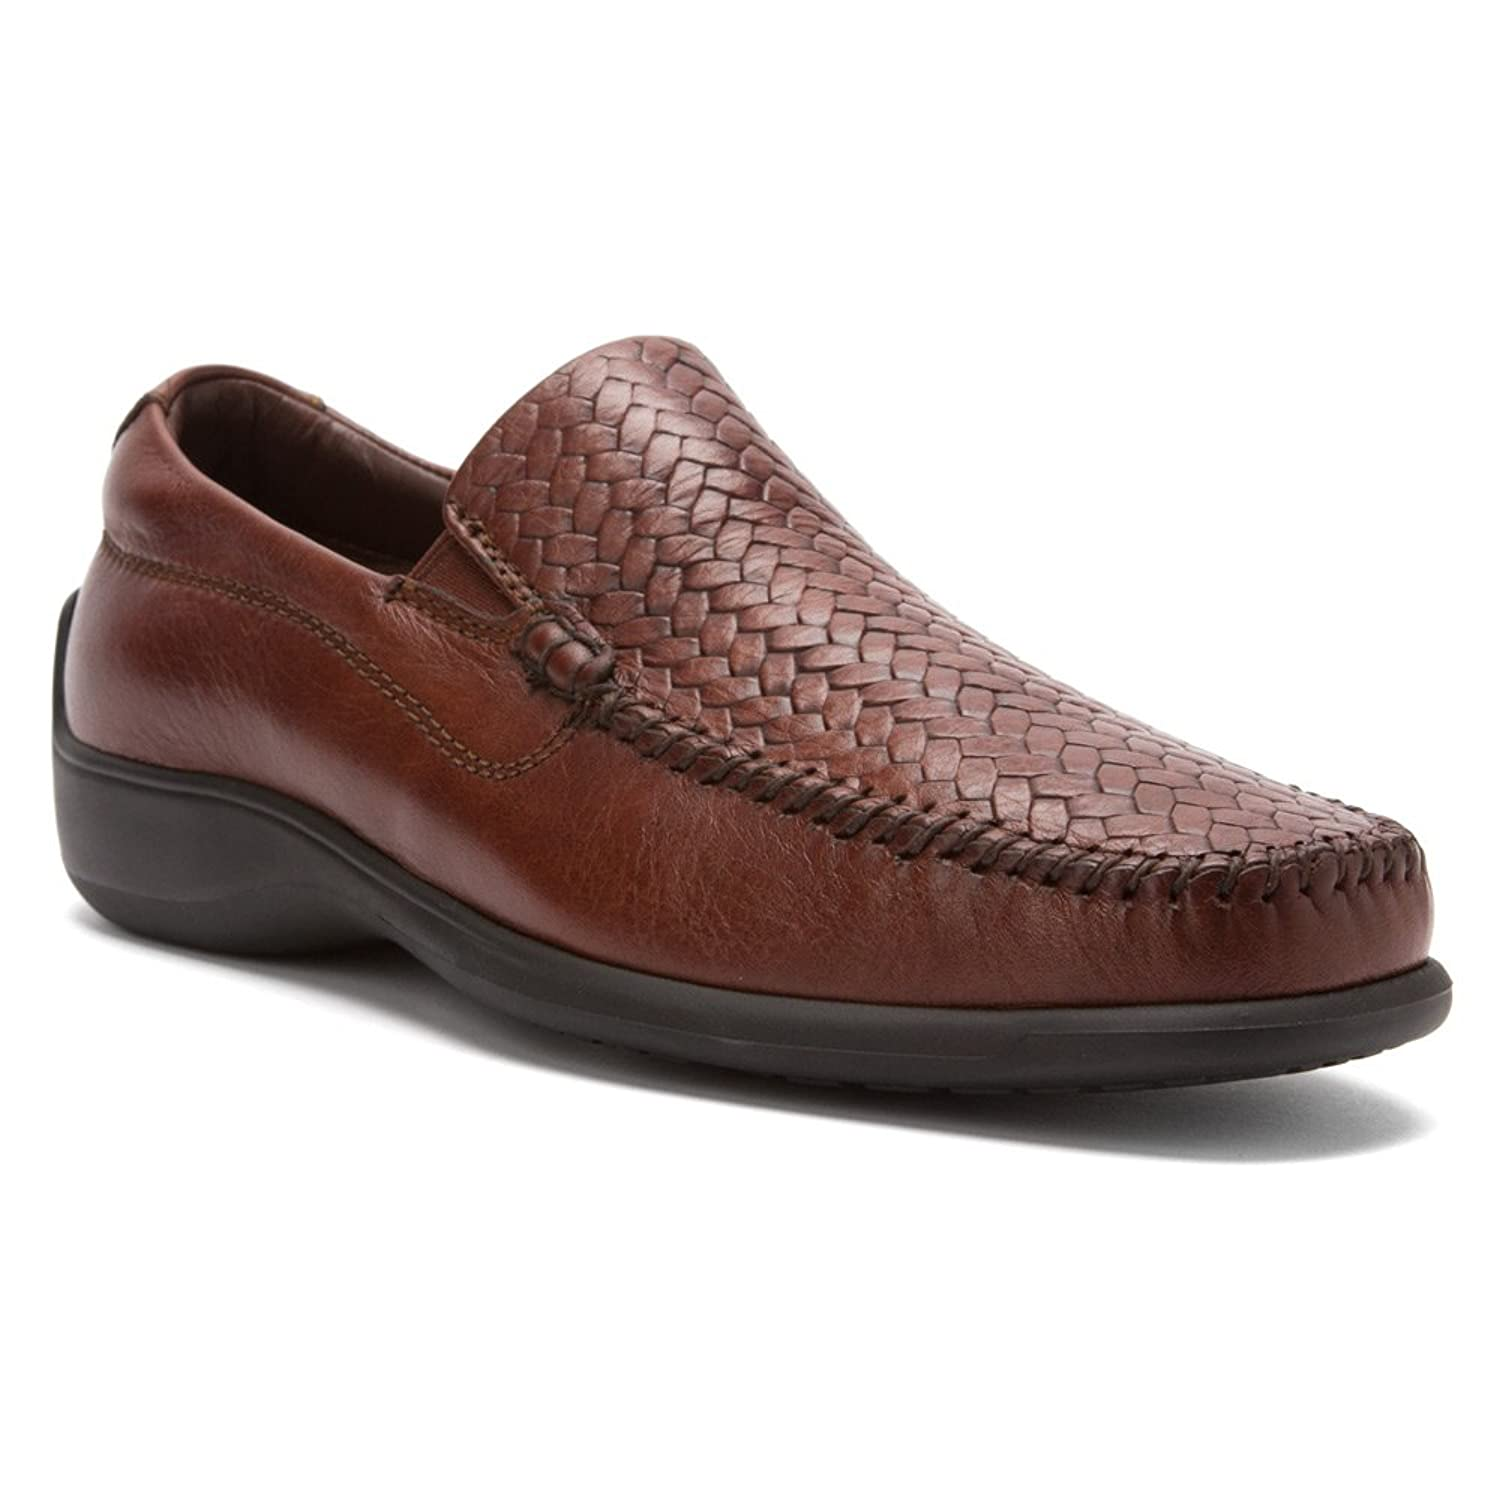 Neil M Men's Palermo Slip-On